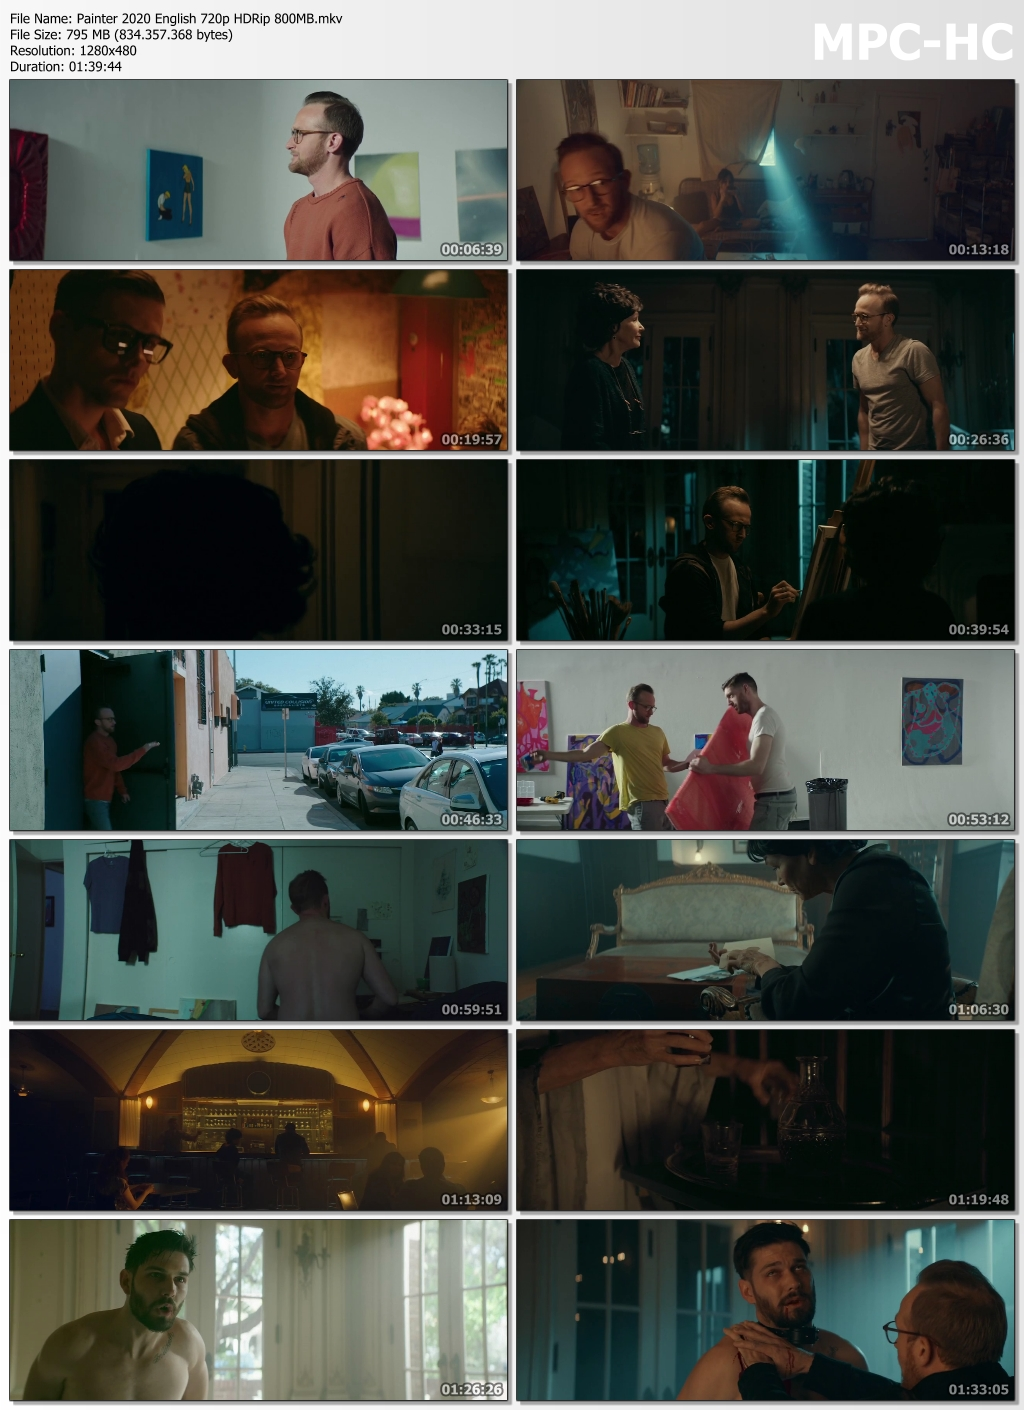 Painter-2020-English-720p-HDRip-800-MB-mkv-thumbs